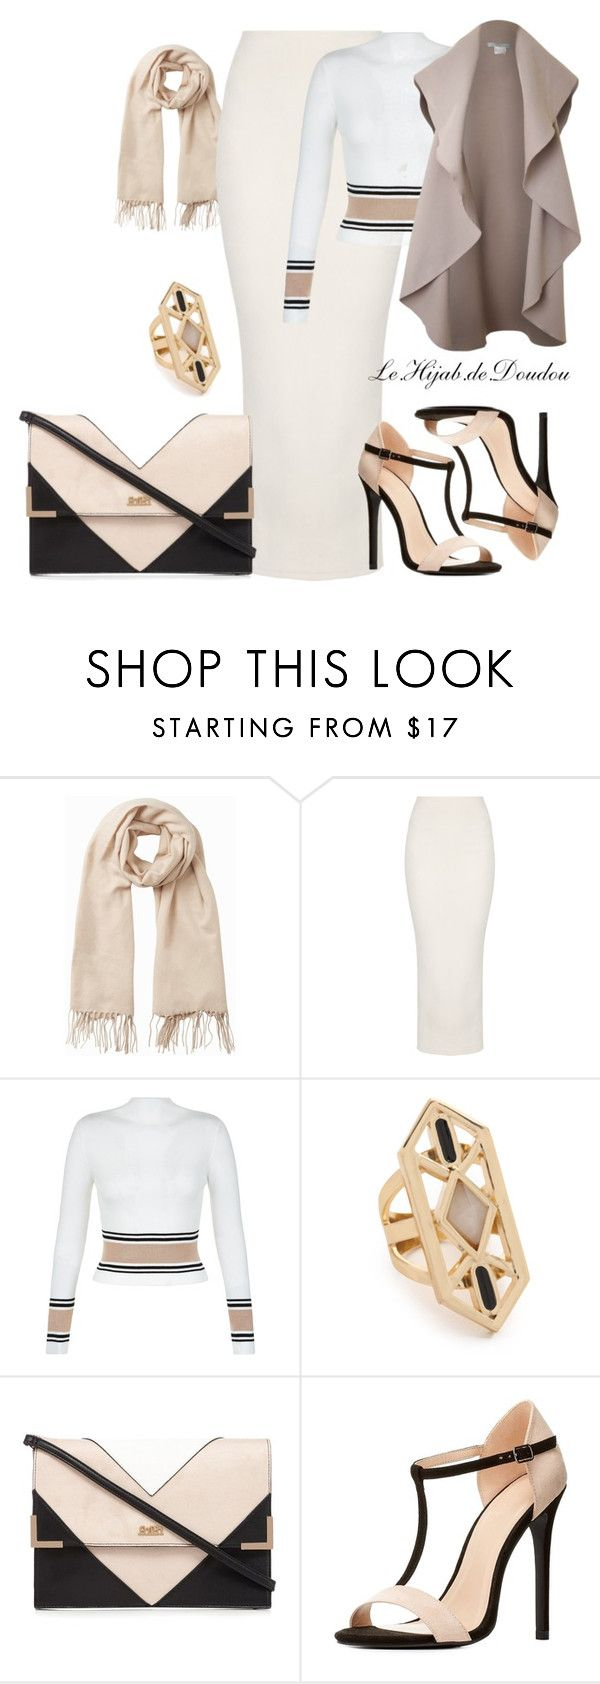 """""""Hijab Outfit"""" by le-hijab-de-doudou ❤ liked on Polyvore featuring Vero Moda, New Look, Jules Smith, Lipsy, Charlotte Russe and Pala"""